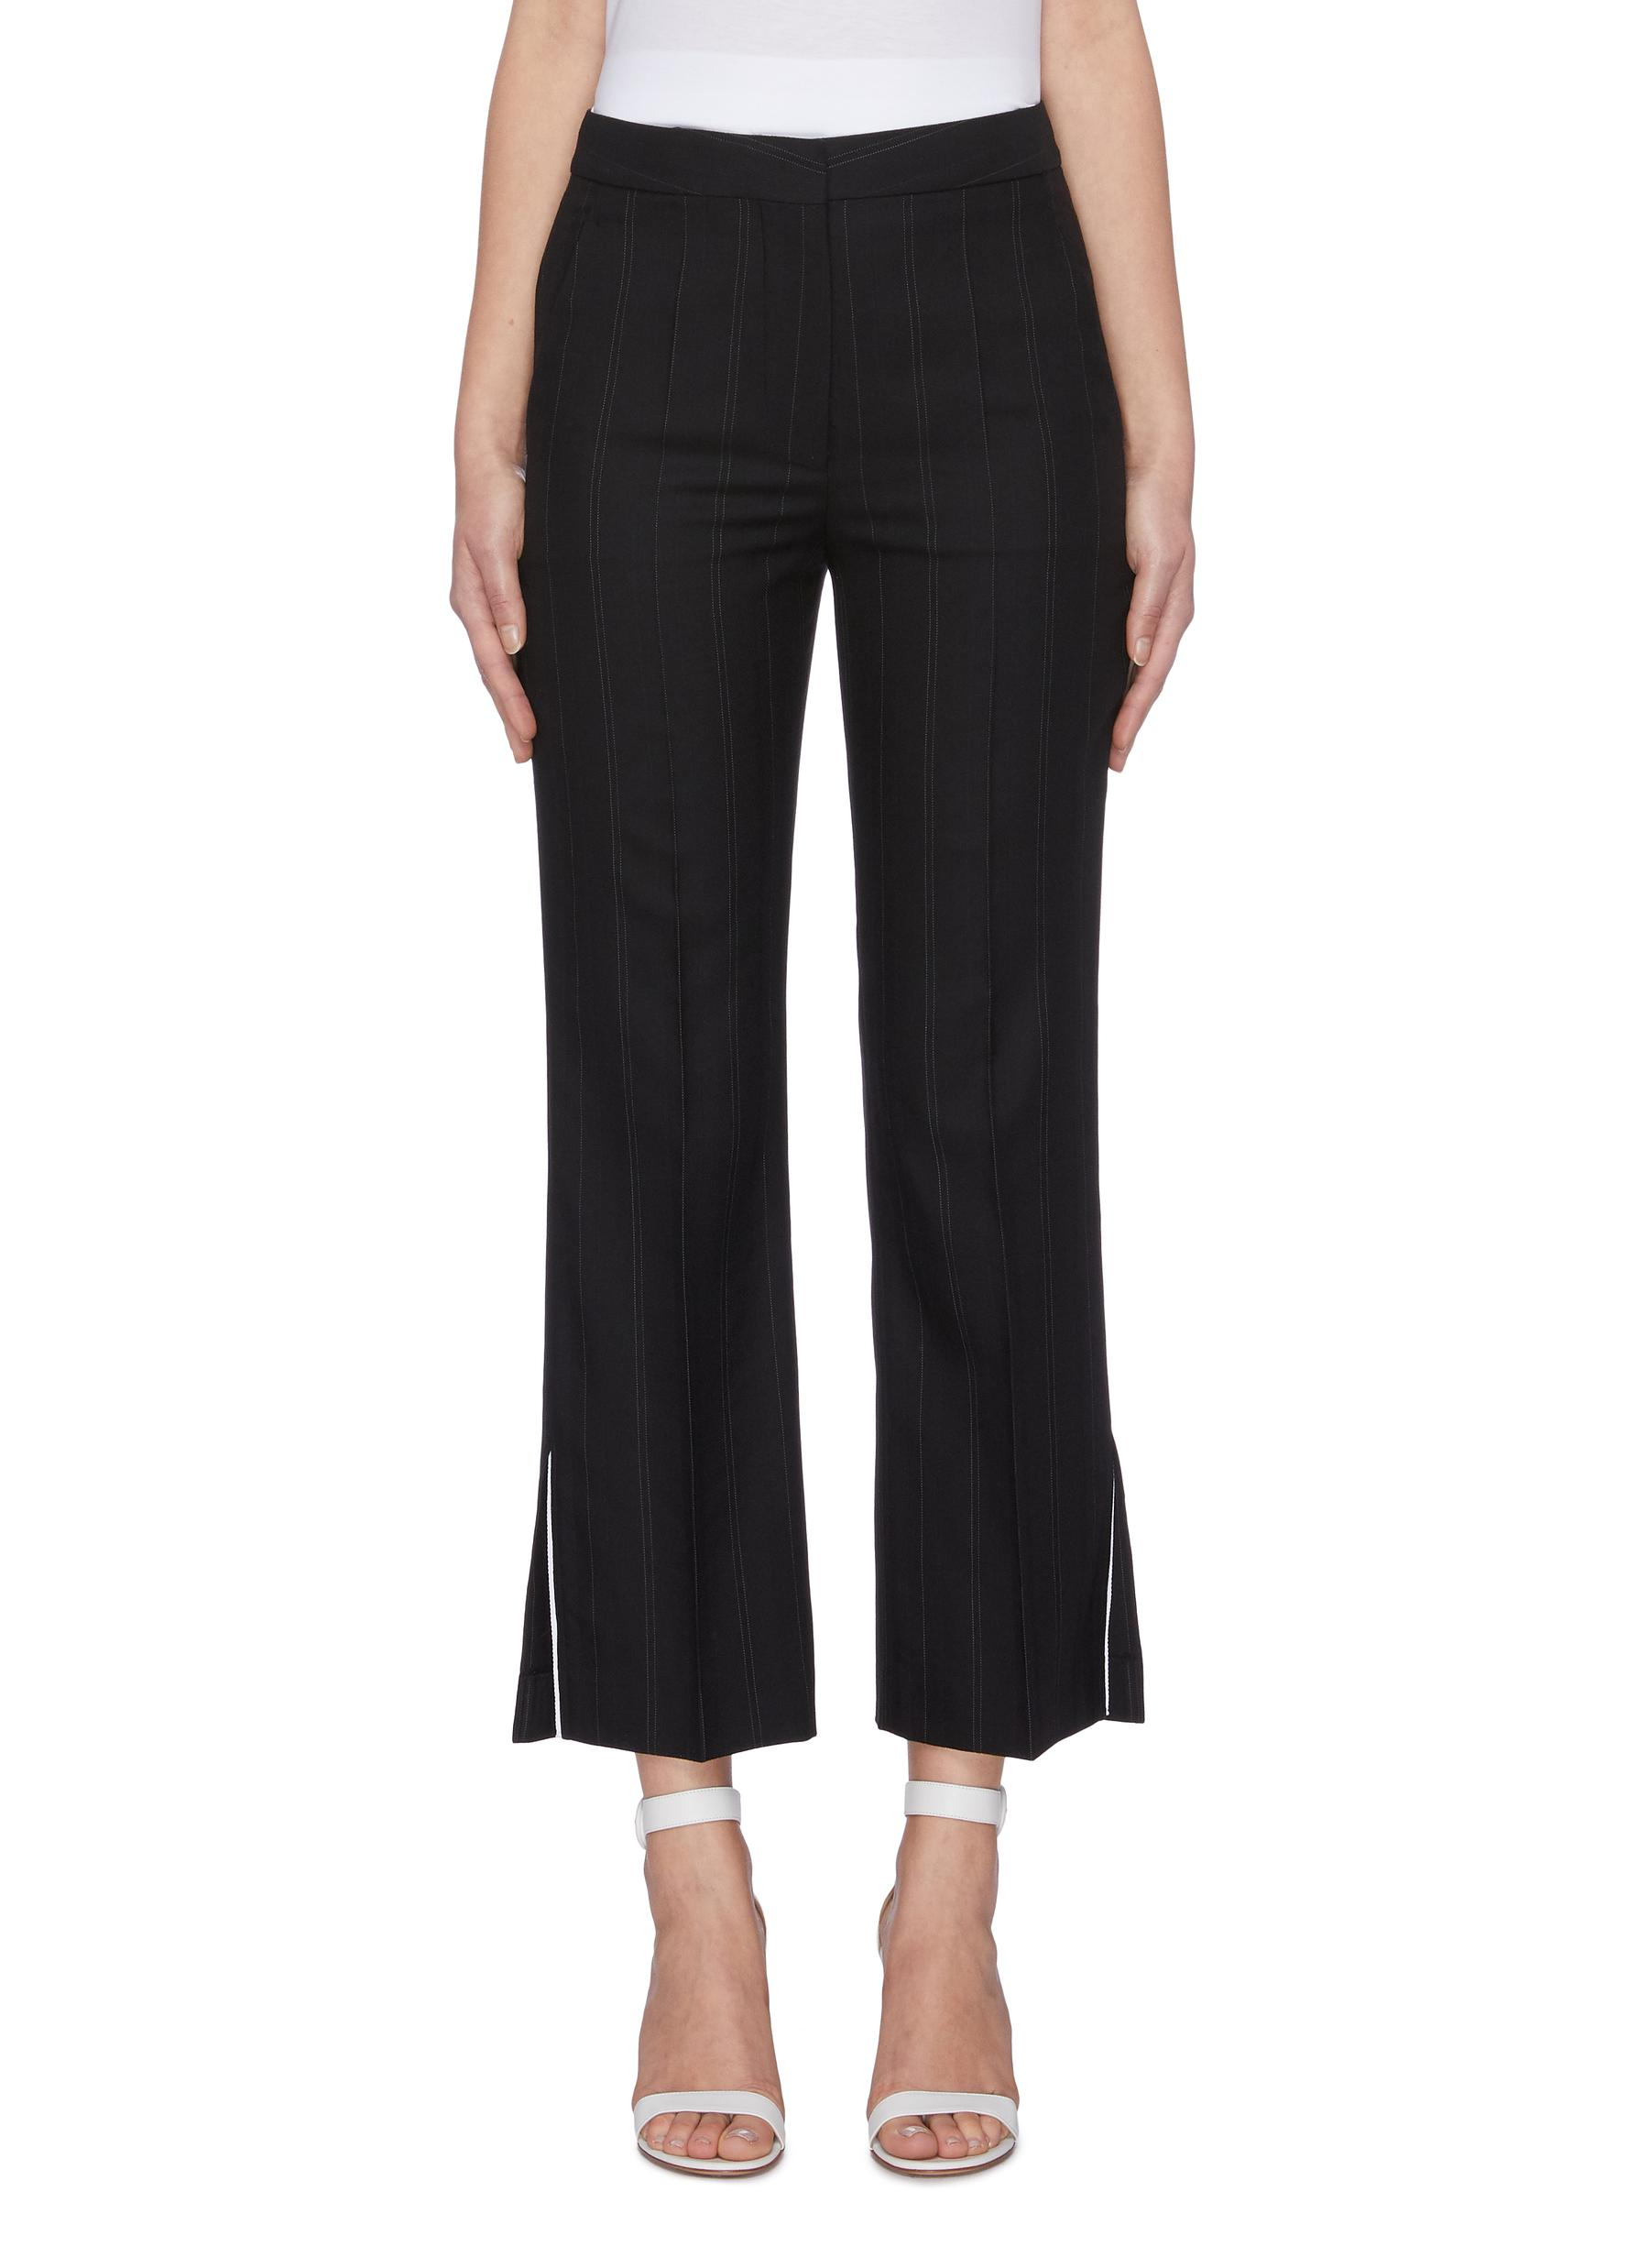 Pinstripe flared suiting pants by Stella Mccartney